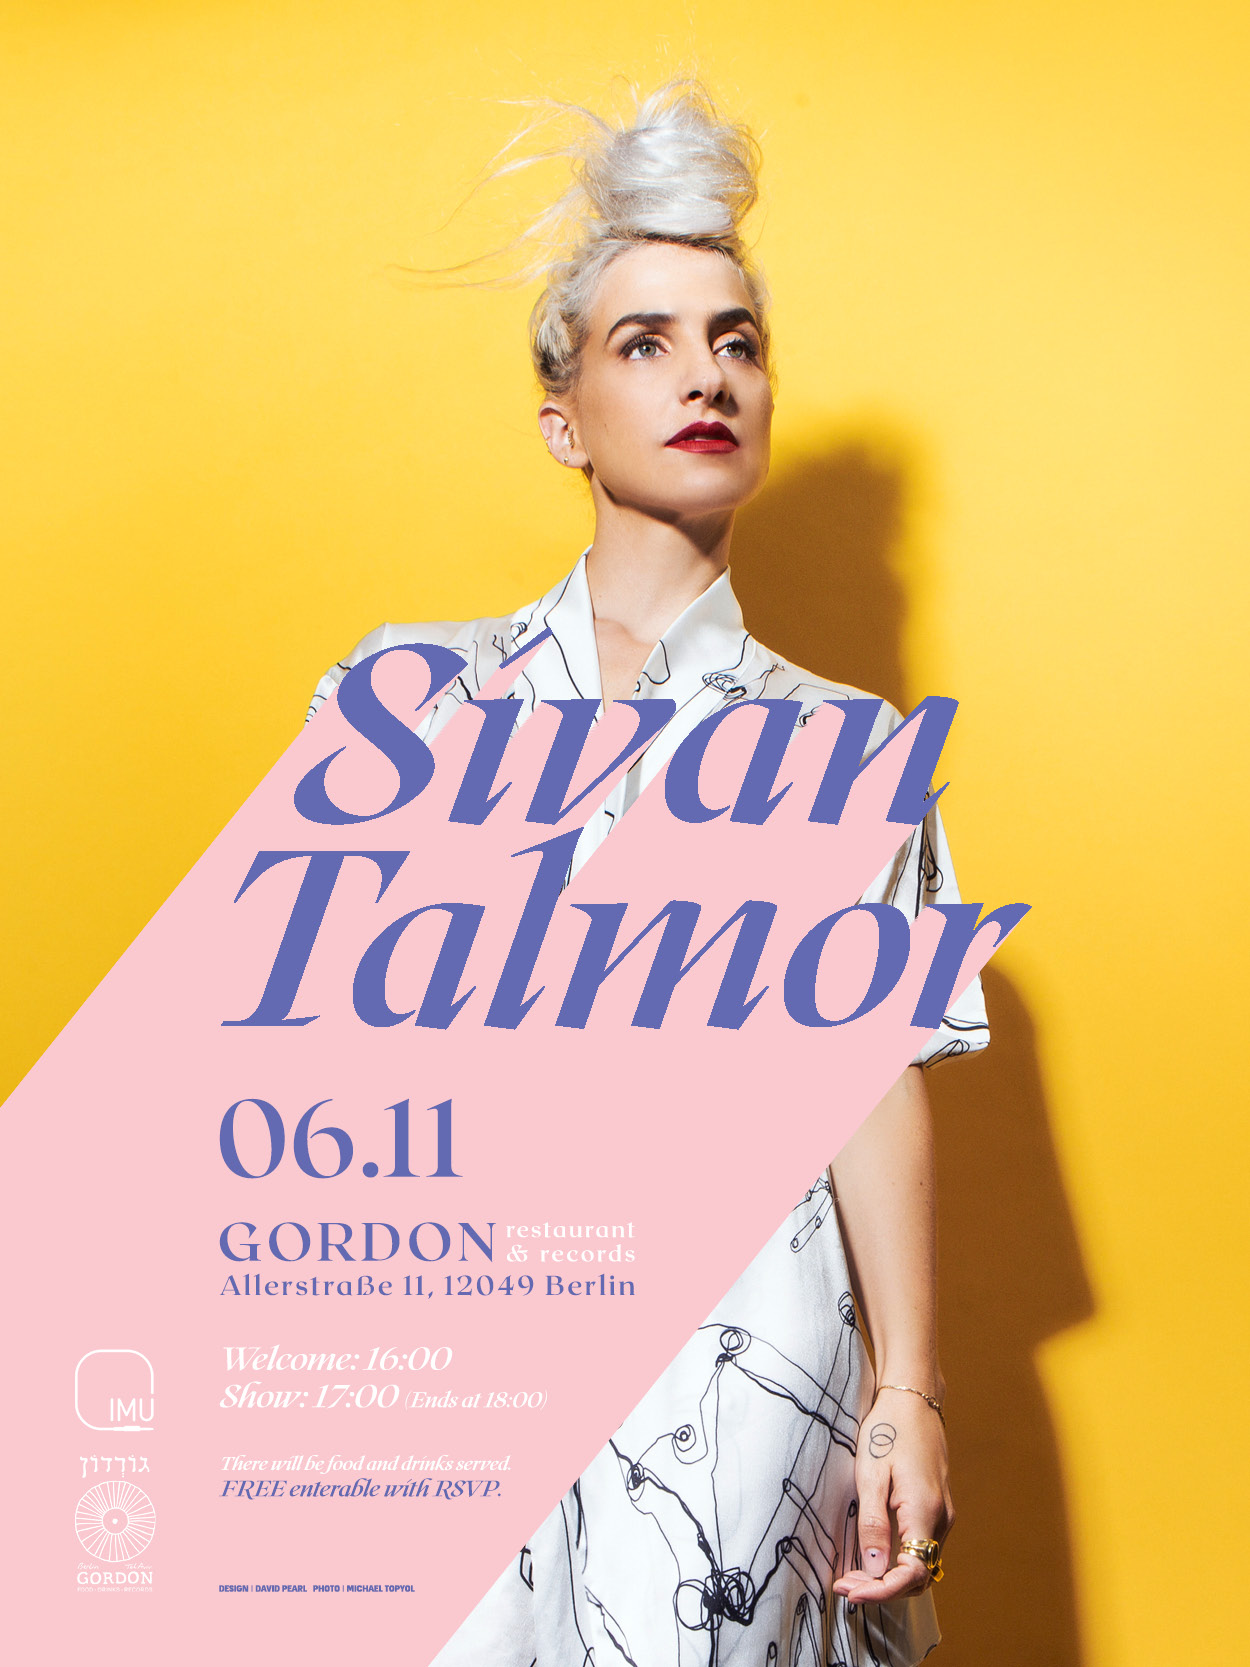 Sivan Talmor - invitation Gordon Cafe 06.11